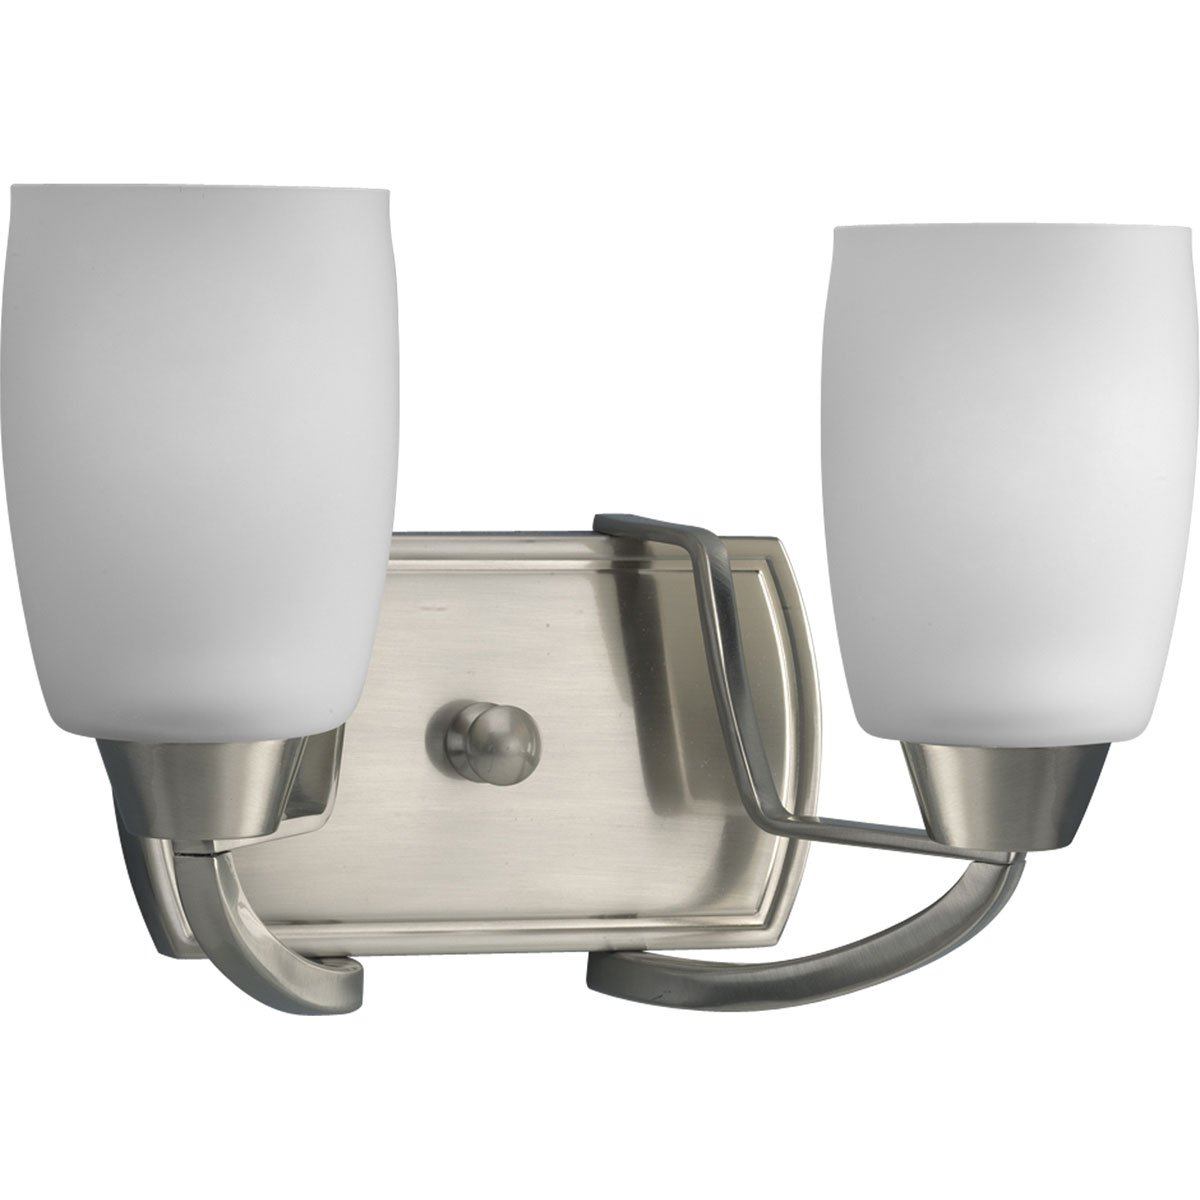 Progress Lighting P2795-09 2-Light Bath Bracket with White Opal Glass, Brushed Nickel